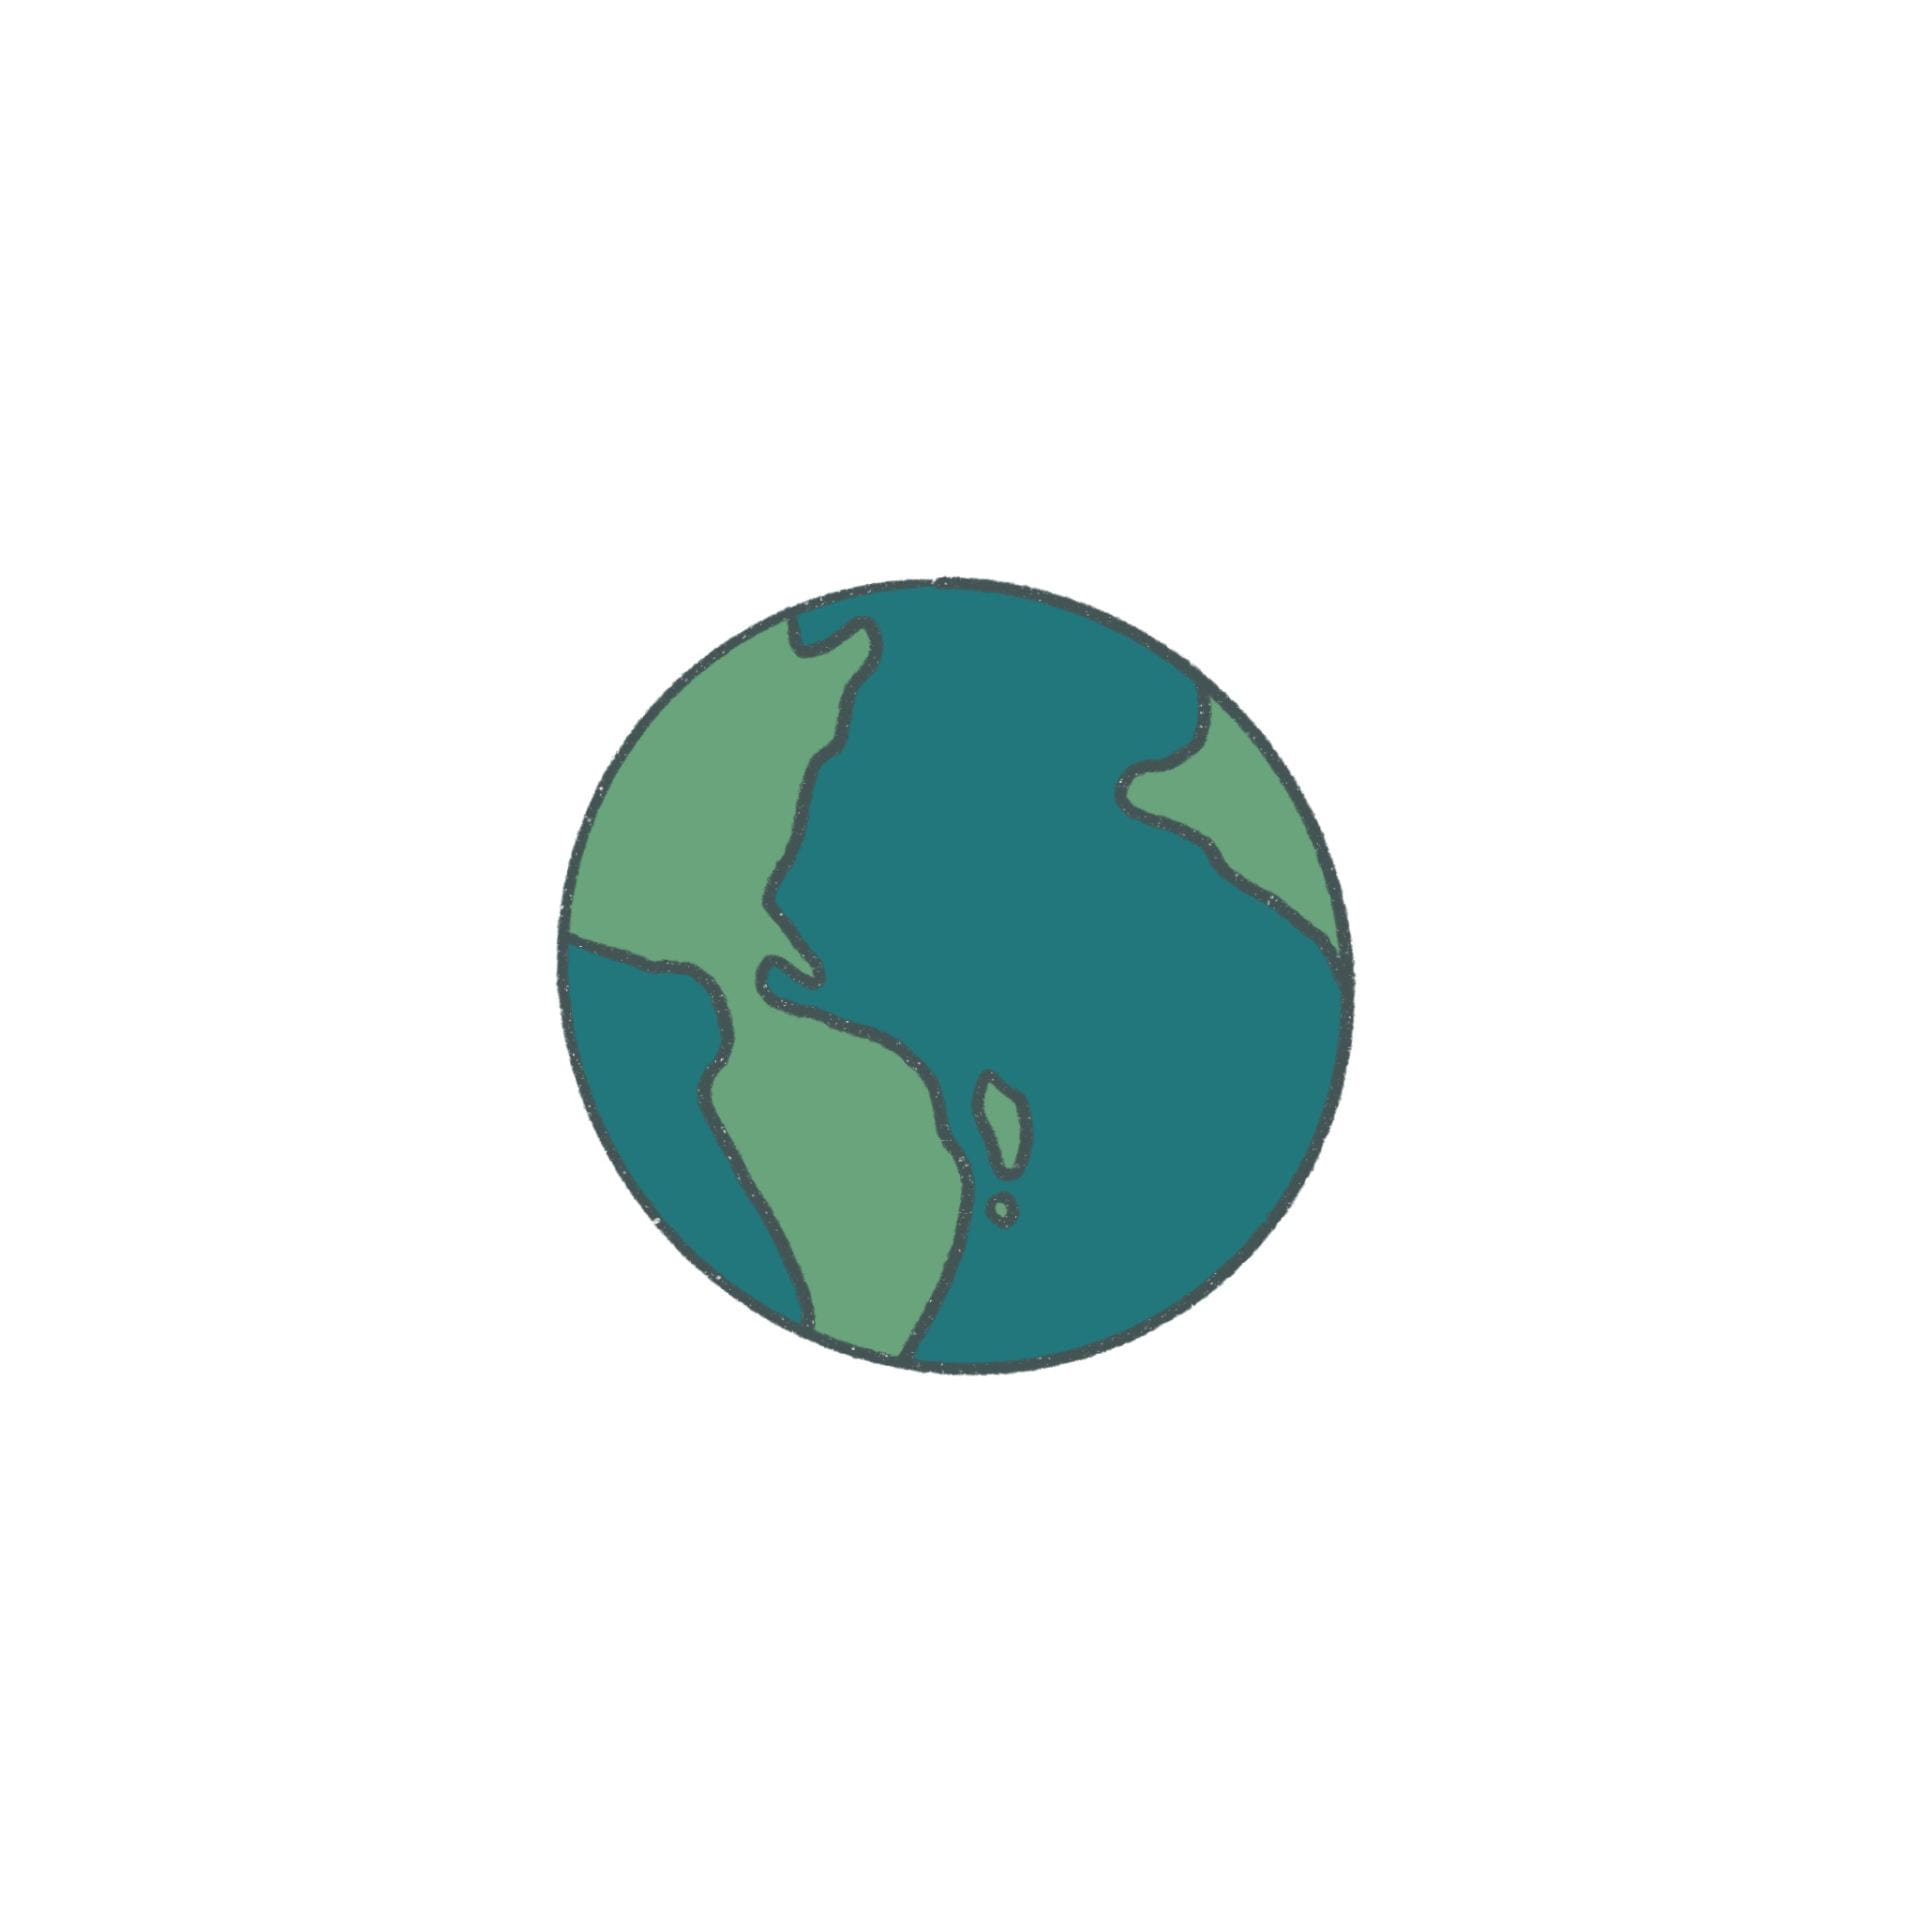 Image of a drawn earth.